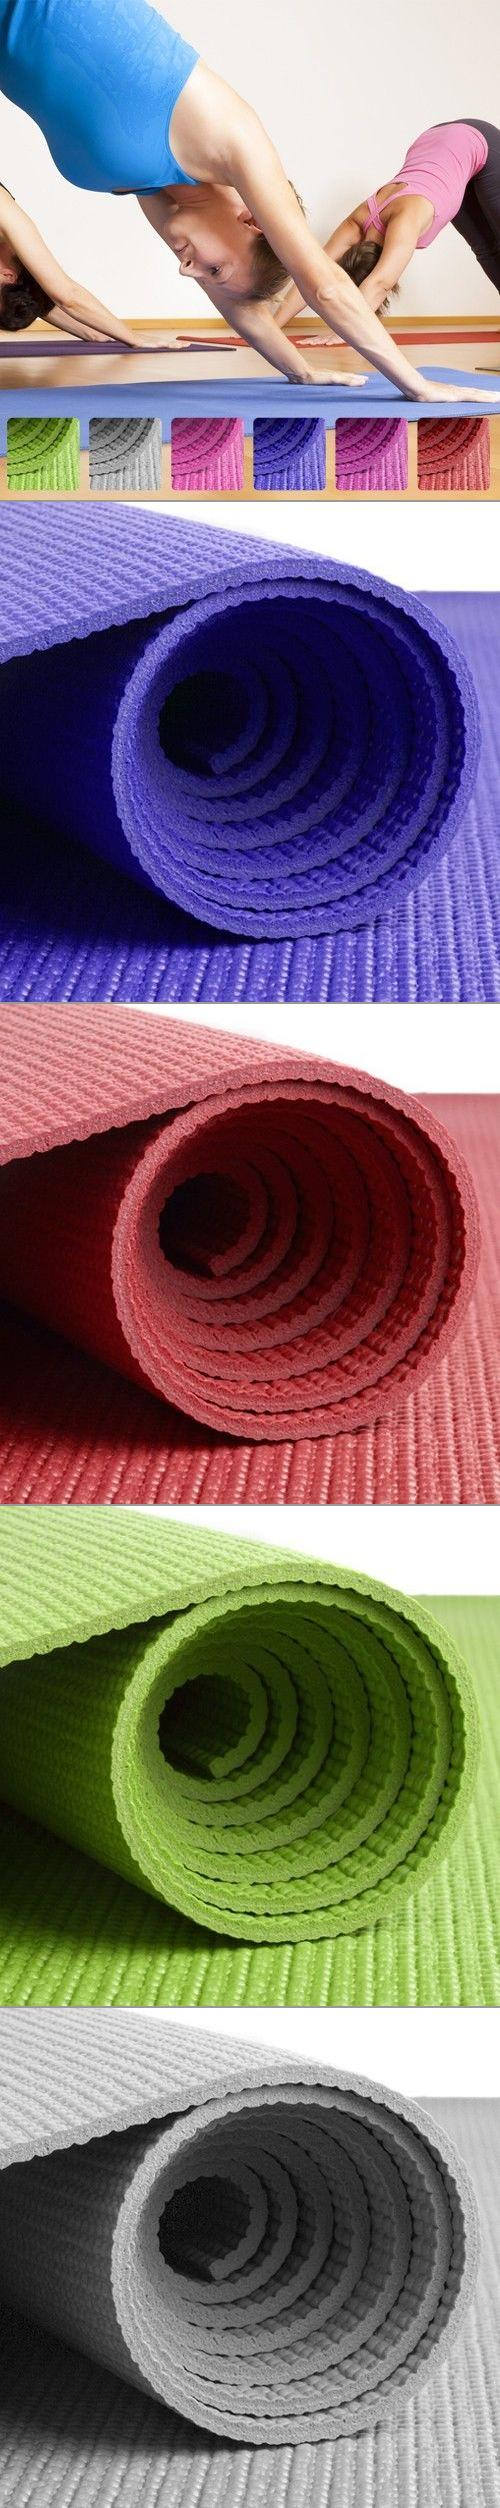 Can you ever have too many #yoga mats?